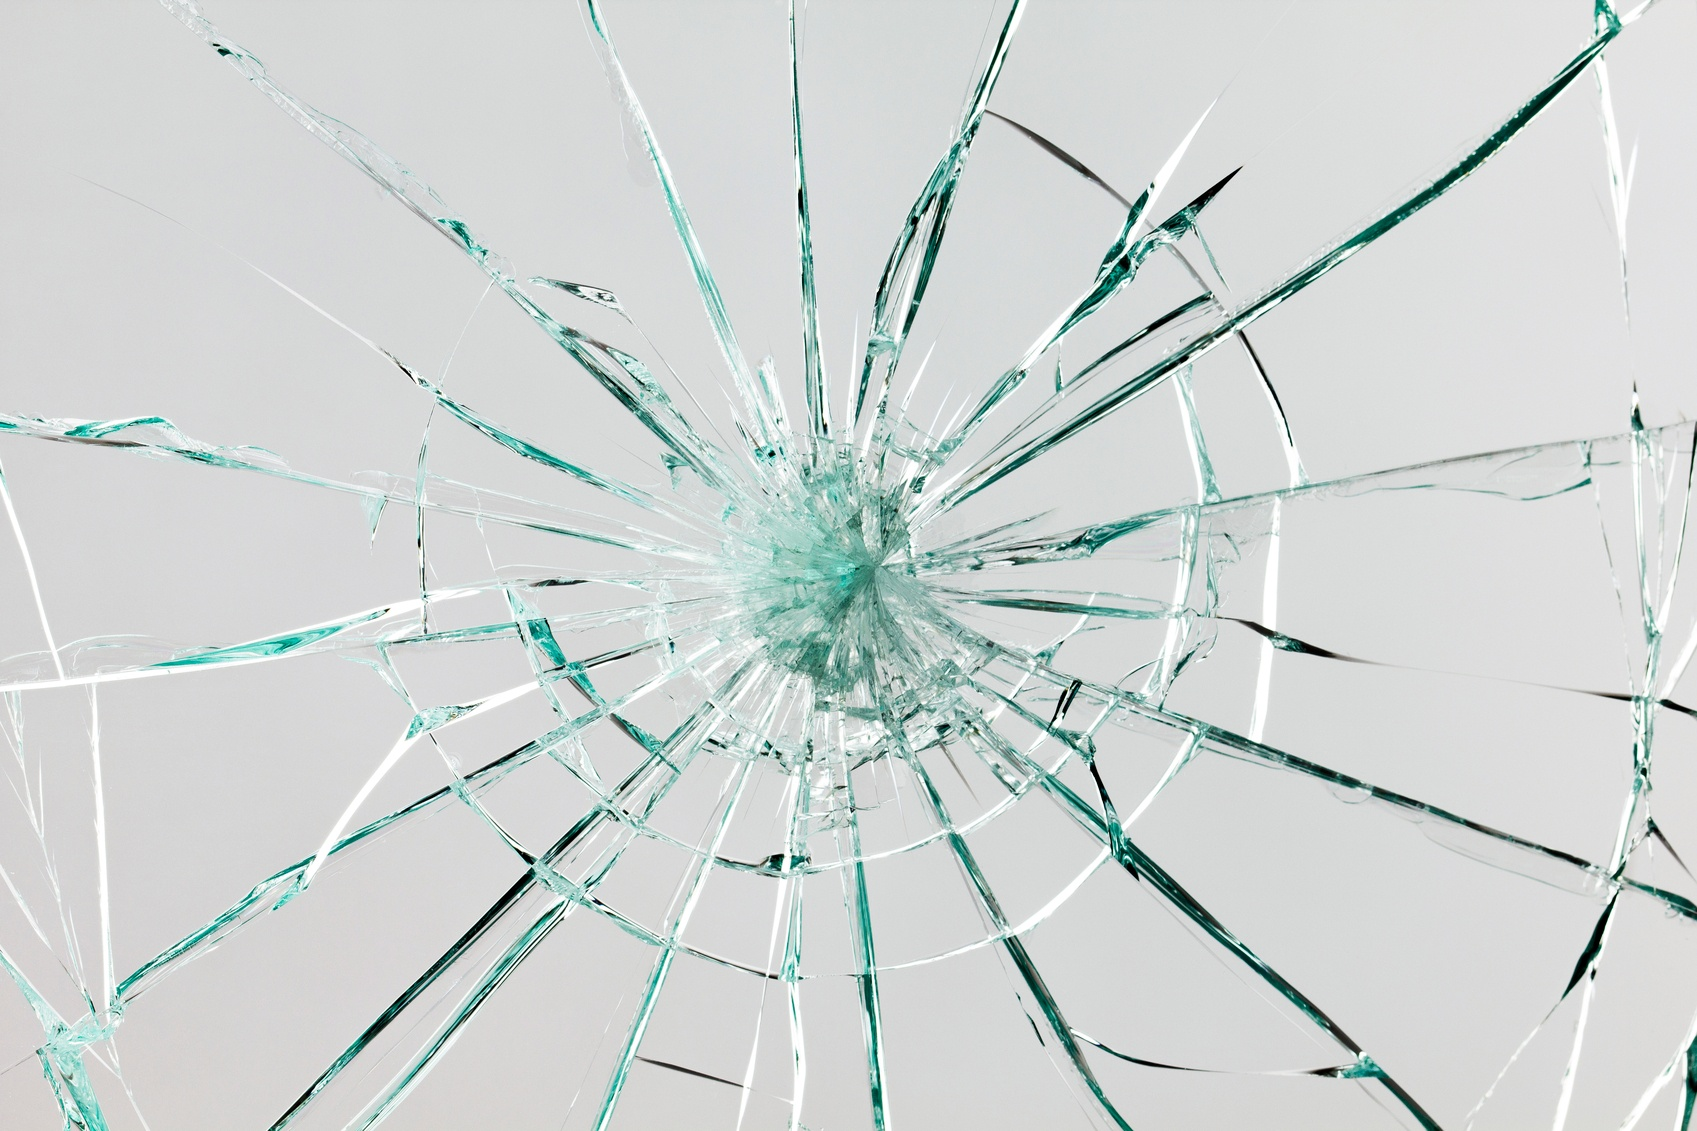 Broken-glass-000021070041_Medium-1.jpg